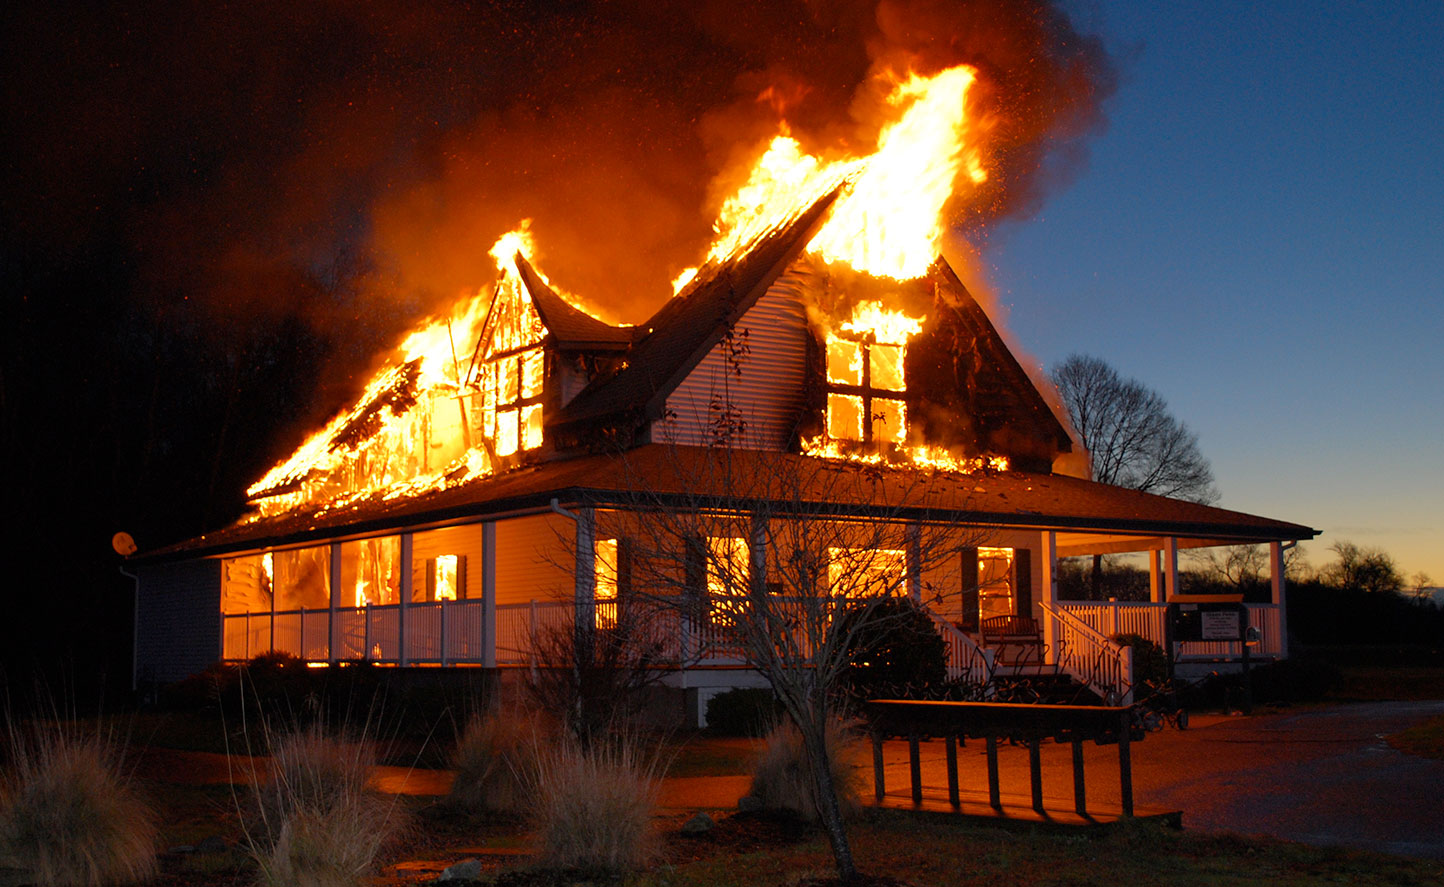 House on Fire image. Get out guick with a WUSH bag and rebuild your life.